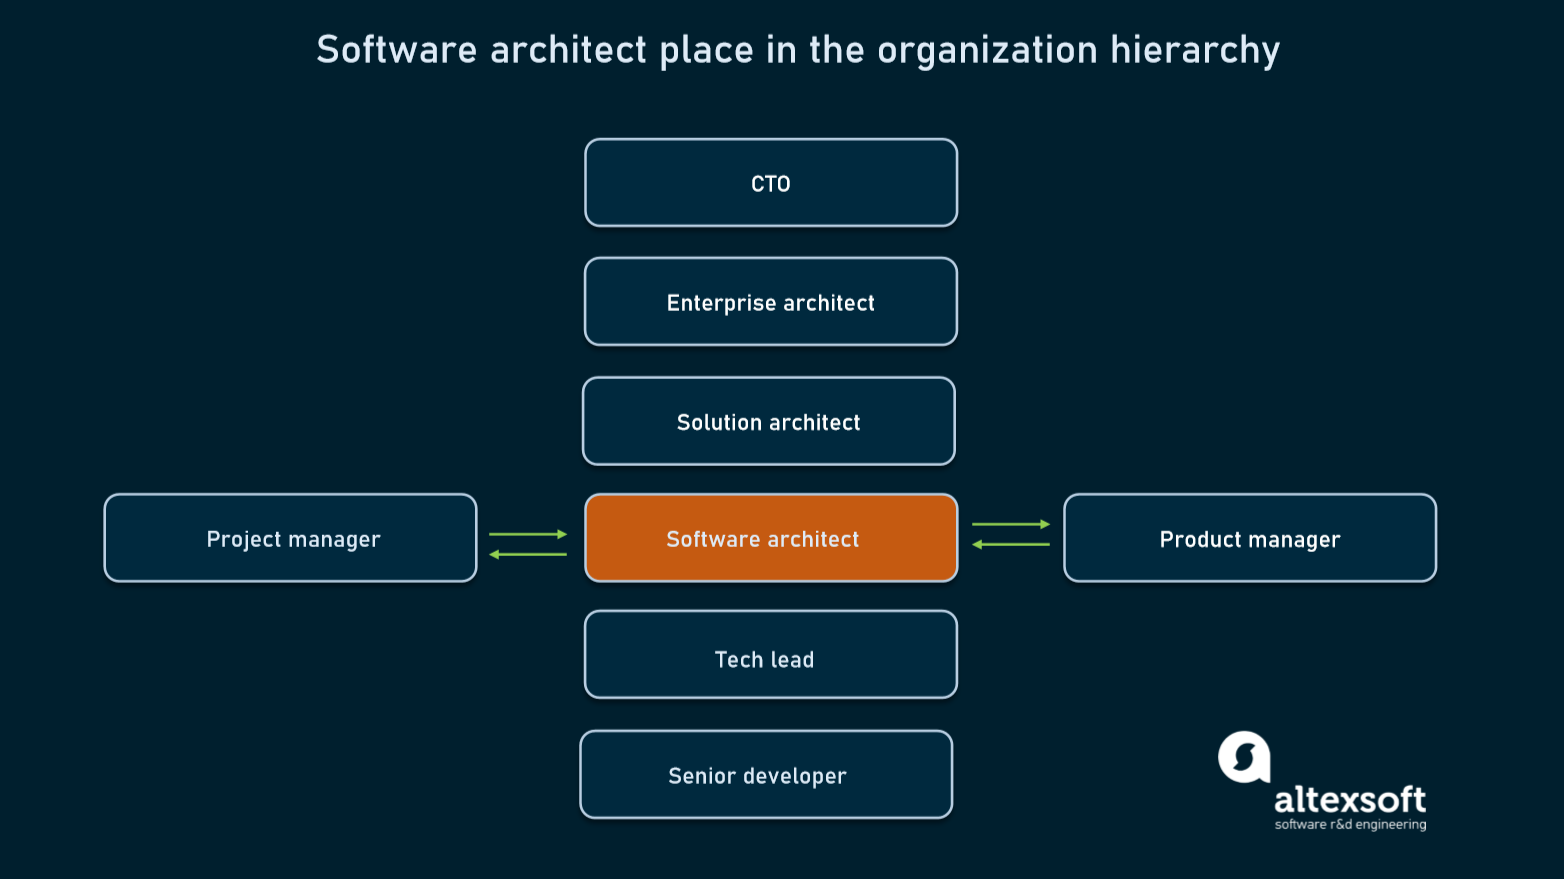 Software arcitect role and place in the organization hierarchy